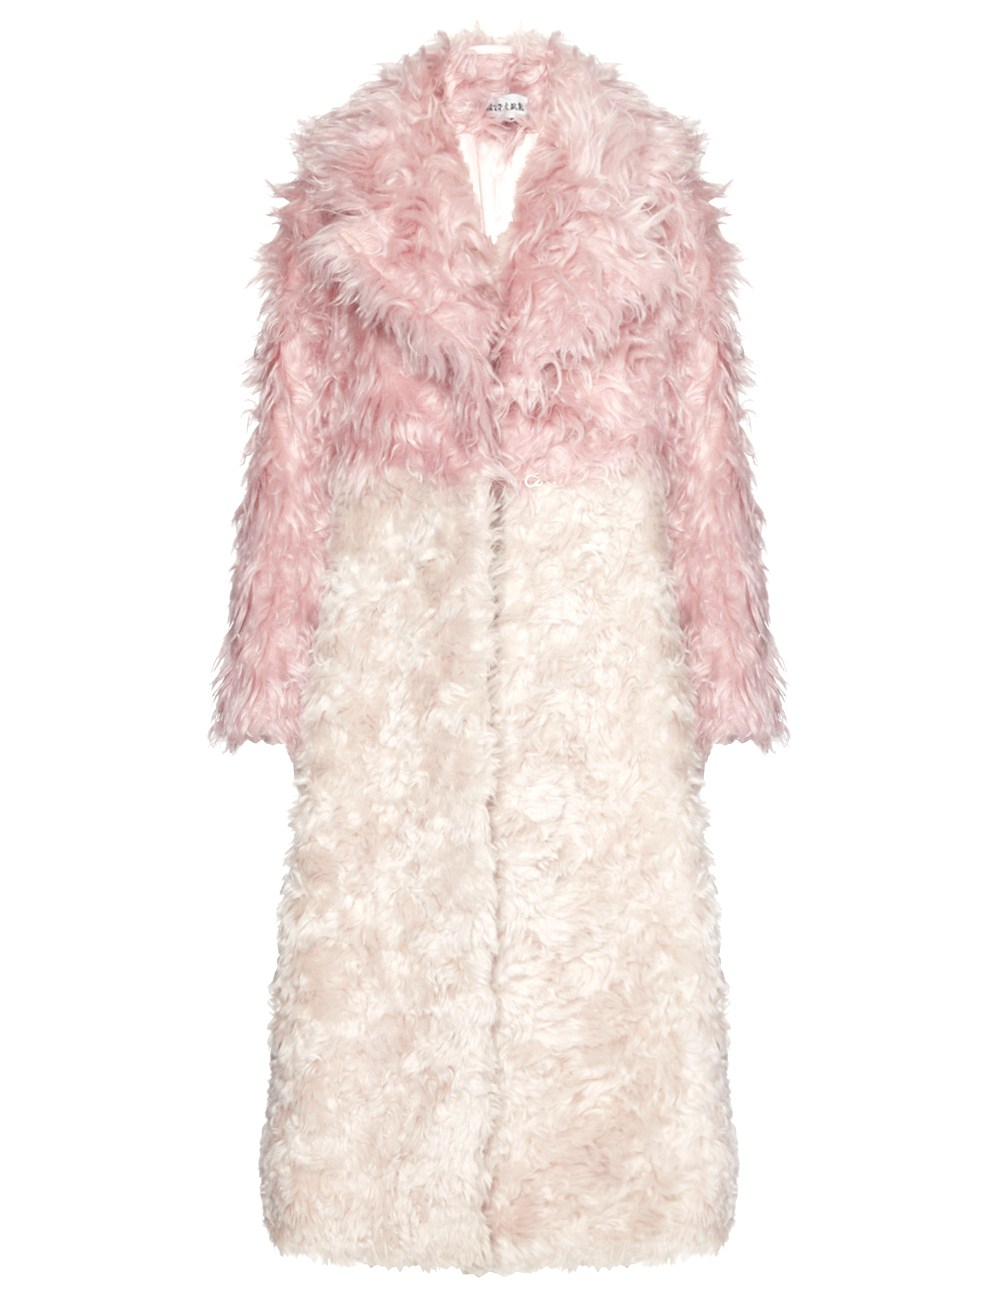 Awake Candy Pink Mohair Coat in White | Lyst